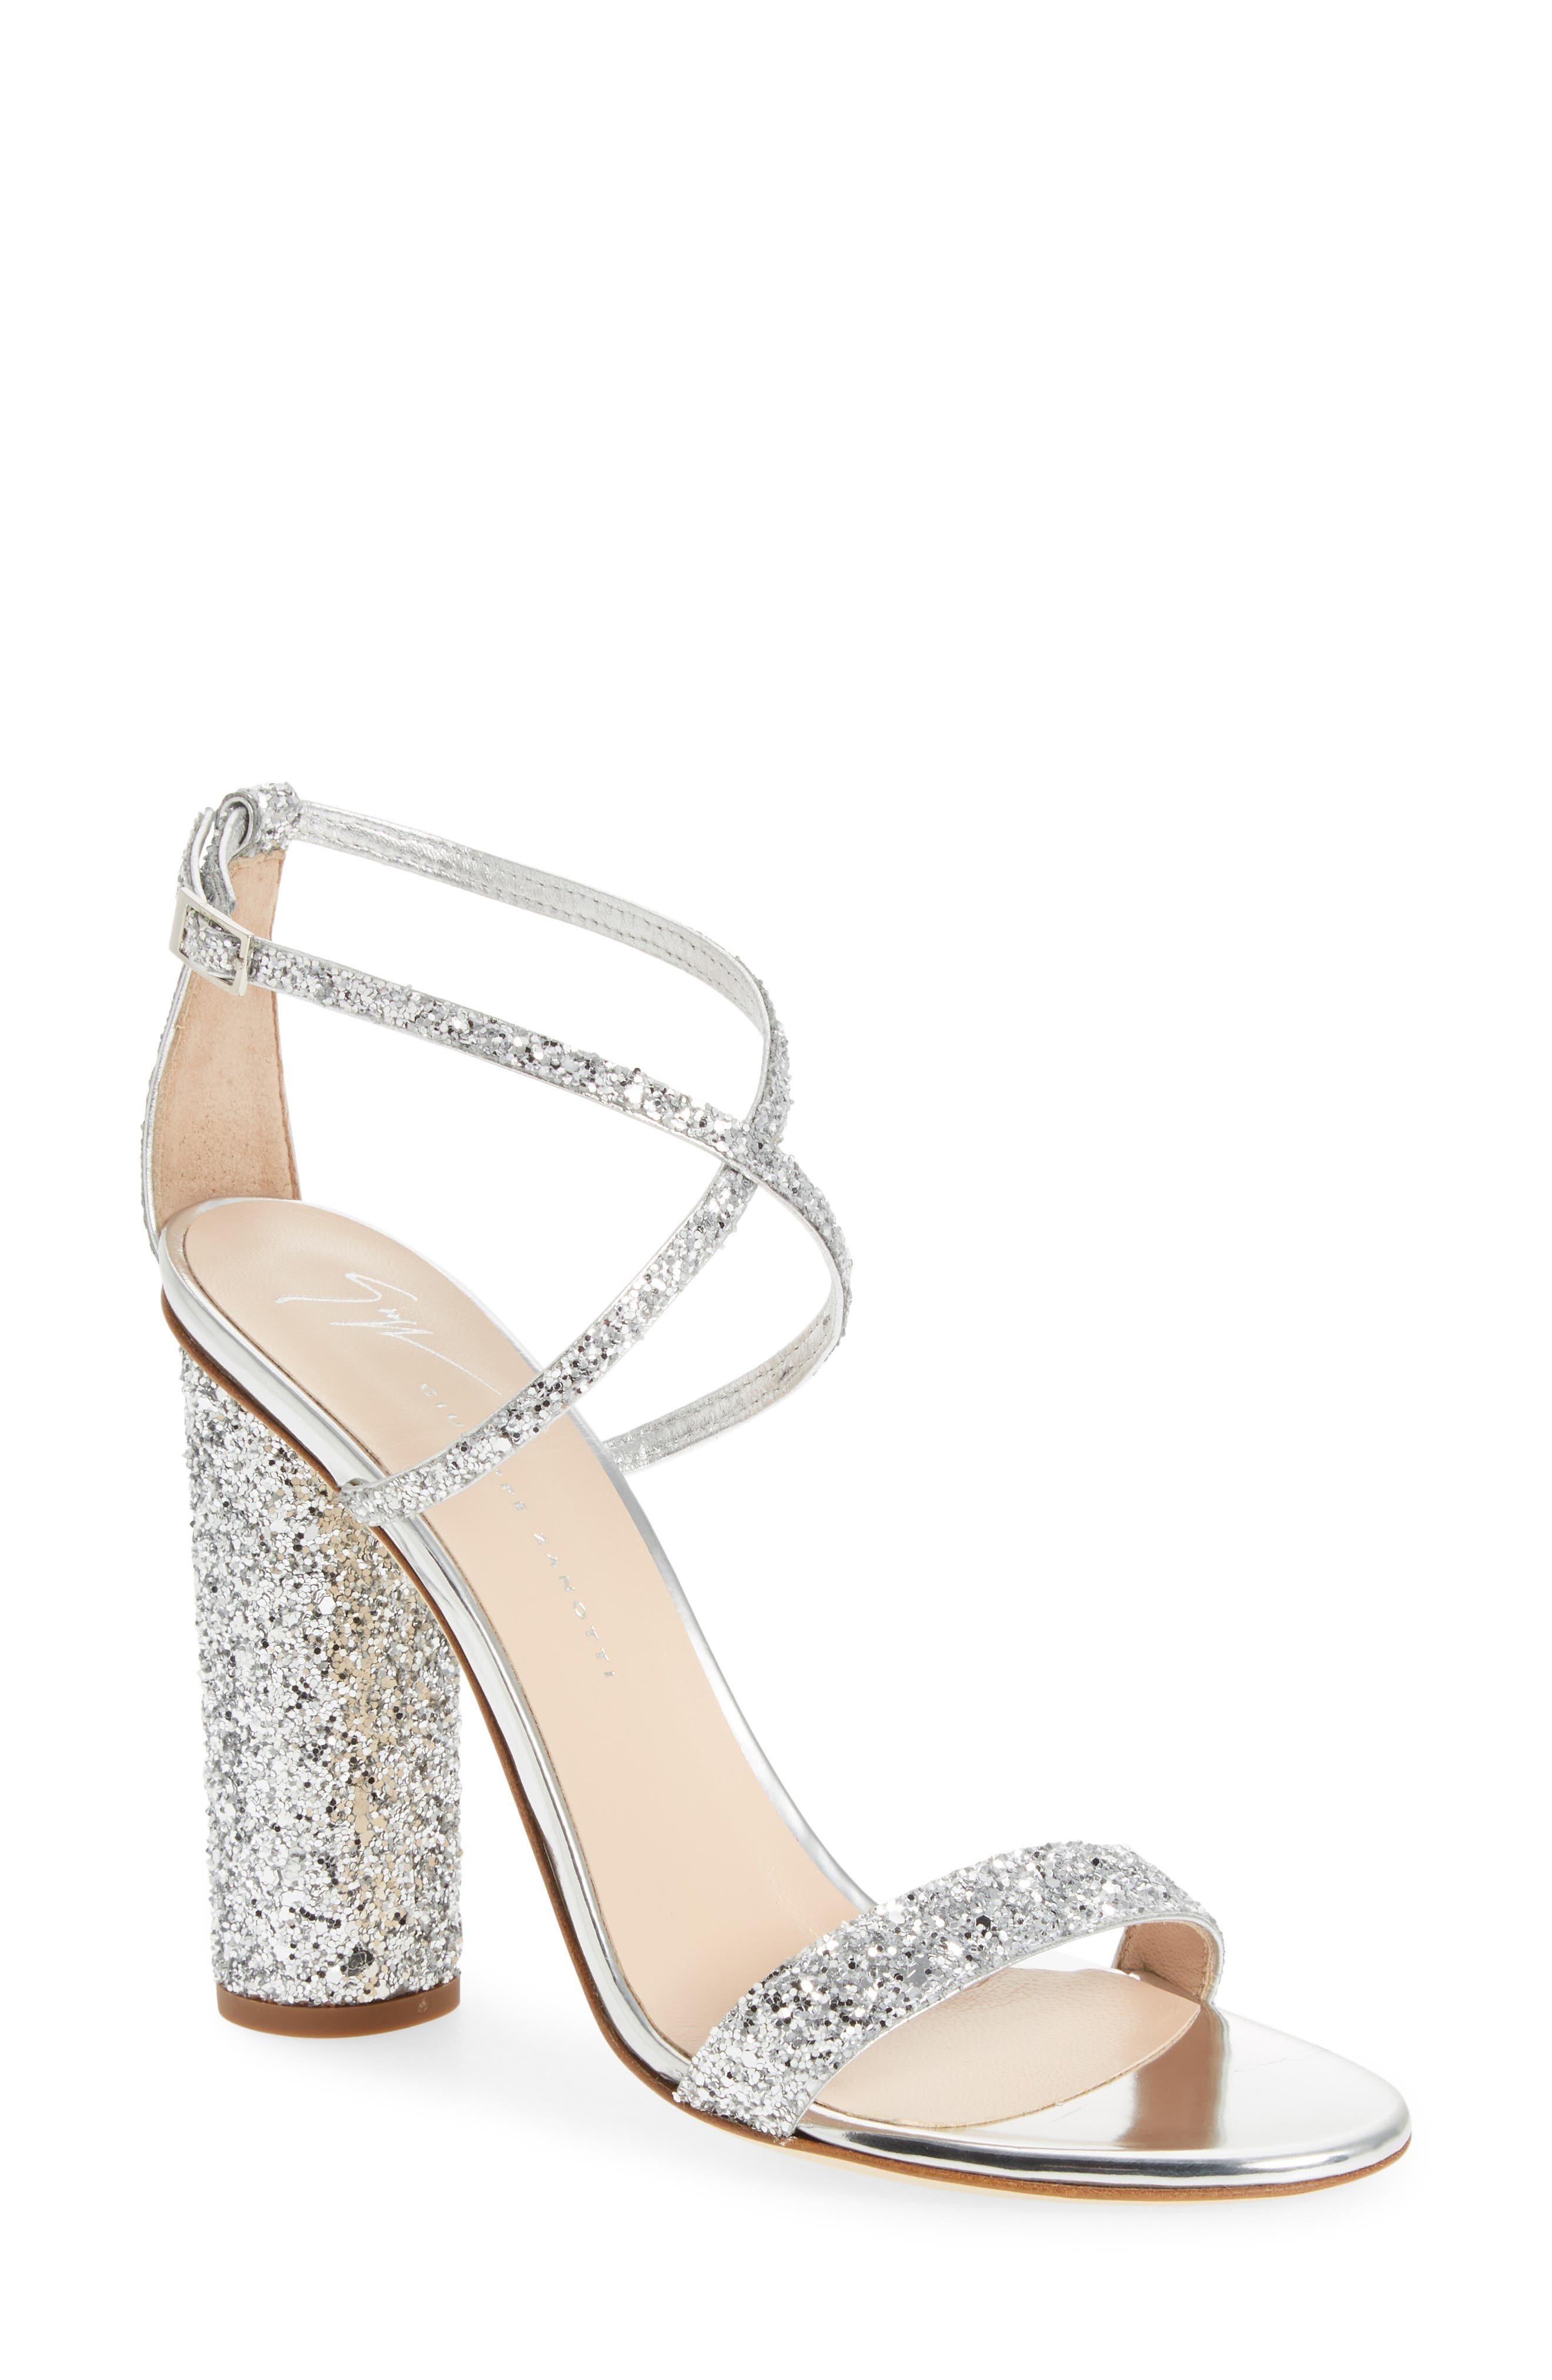 e4899ecf09bd Giuseppe Zanotti Ankle Strap Sandals for Women